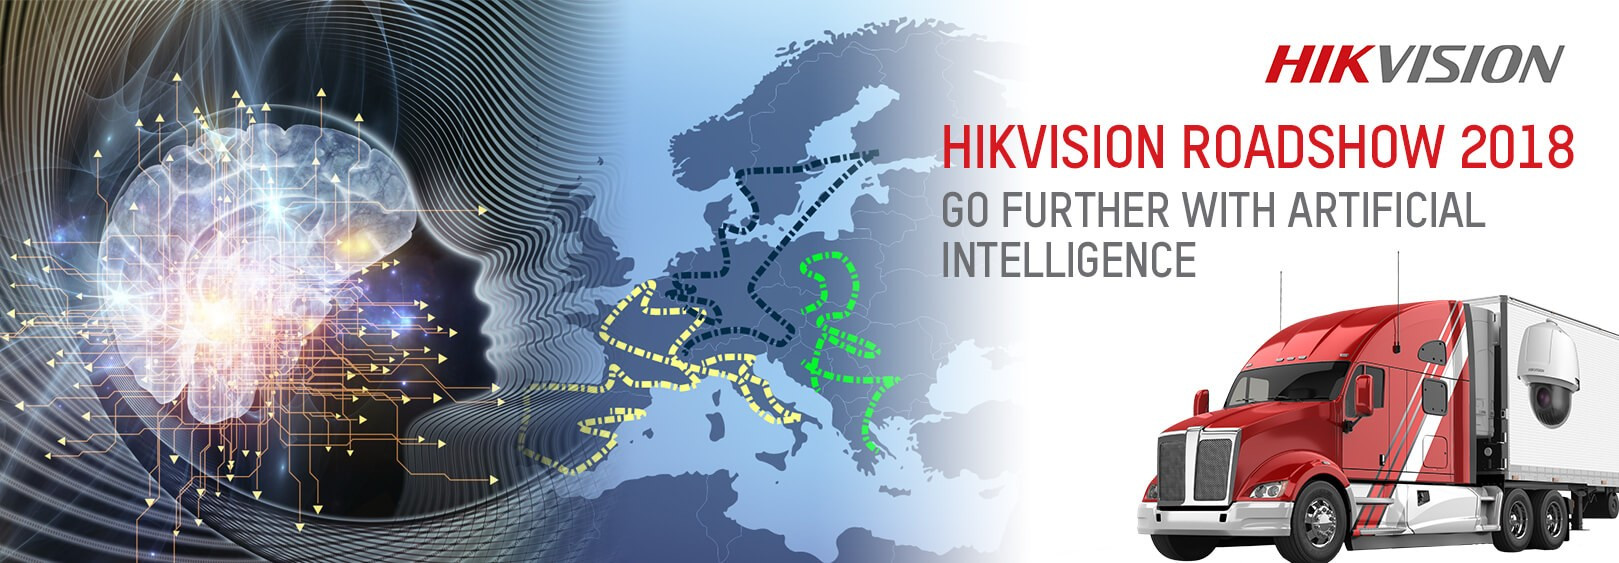 Hikvision-US-Cybersecurity-Roadshow-2018